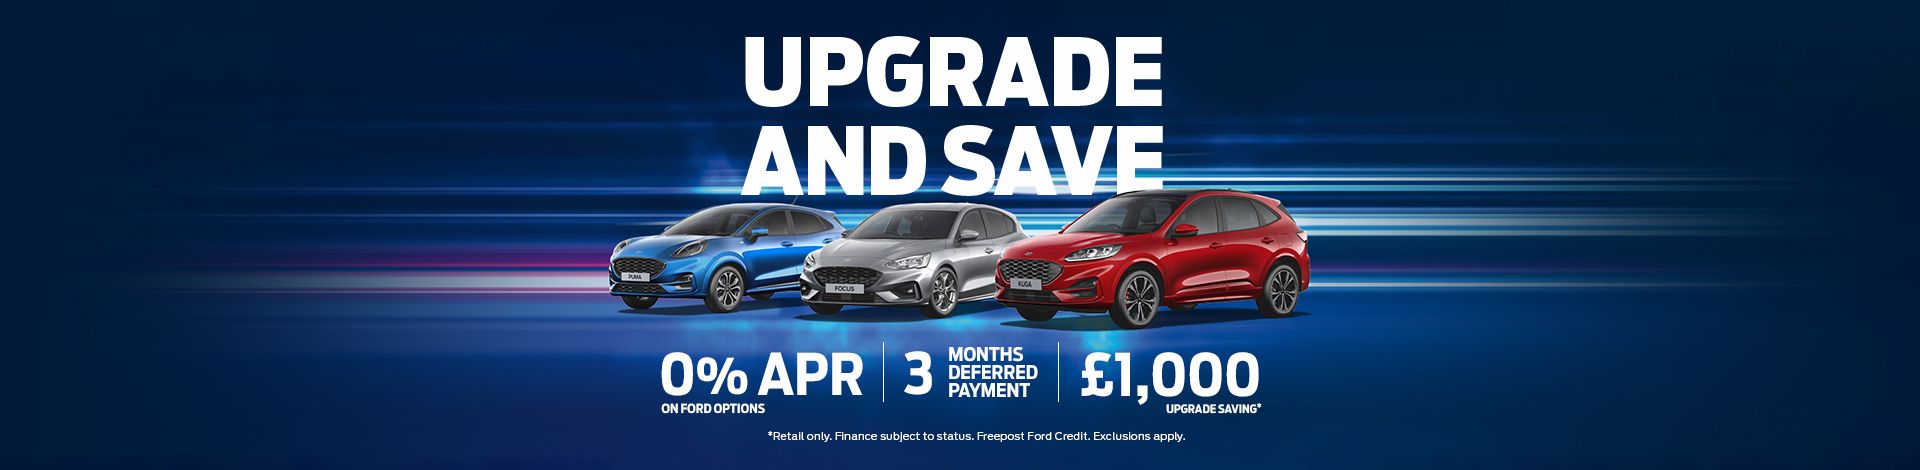 Ford Upgrade and Save Cars